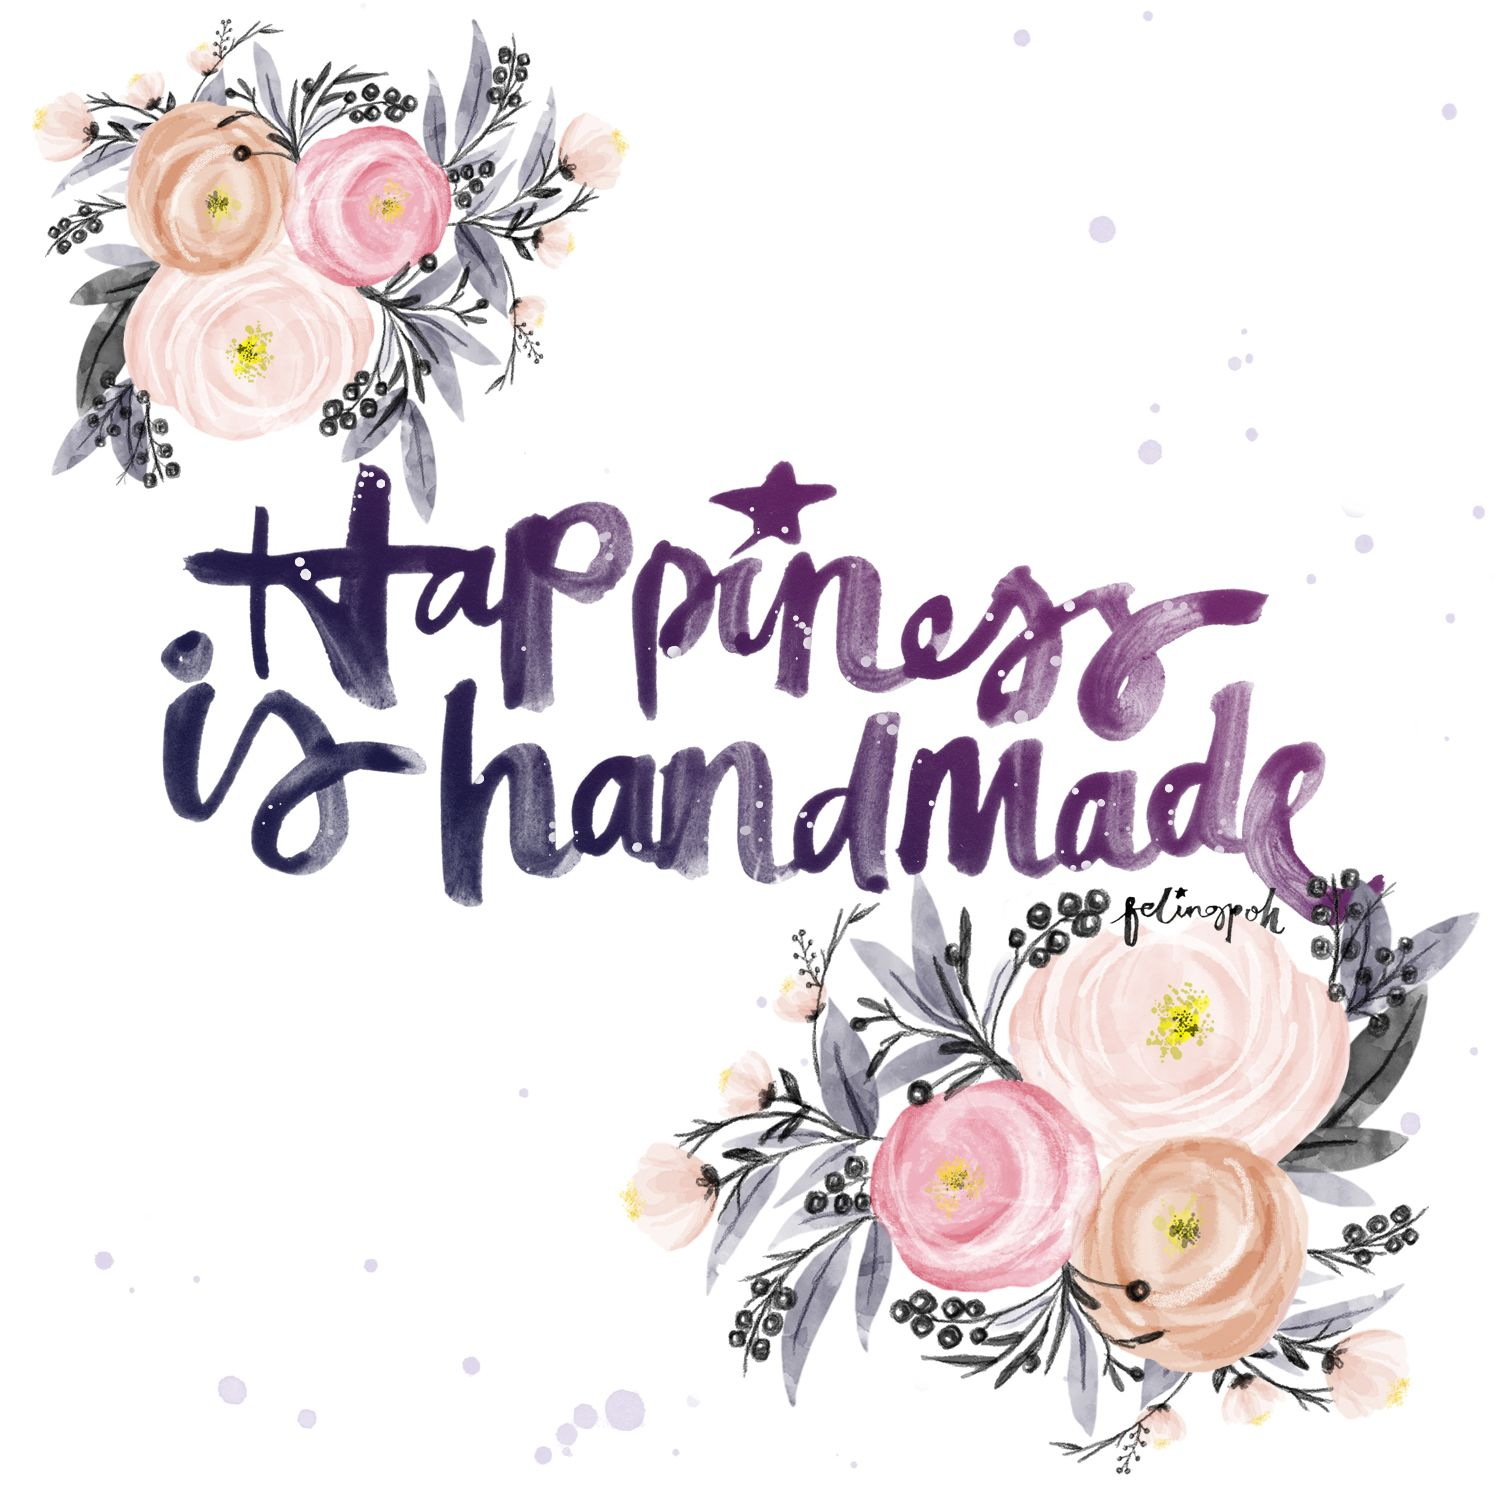 Inspirational Quotes About Happiness: Happiness Is Handmade Calligraphy, Lettering & Quotes